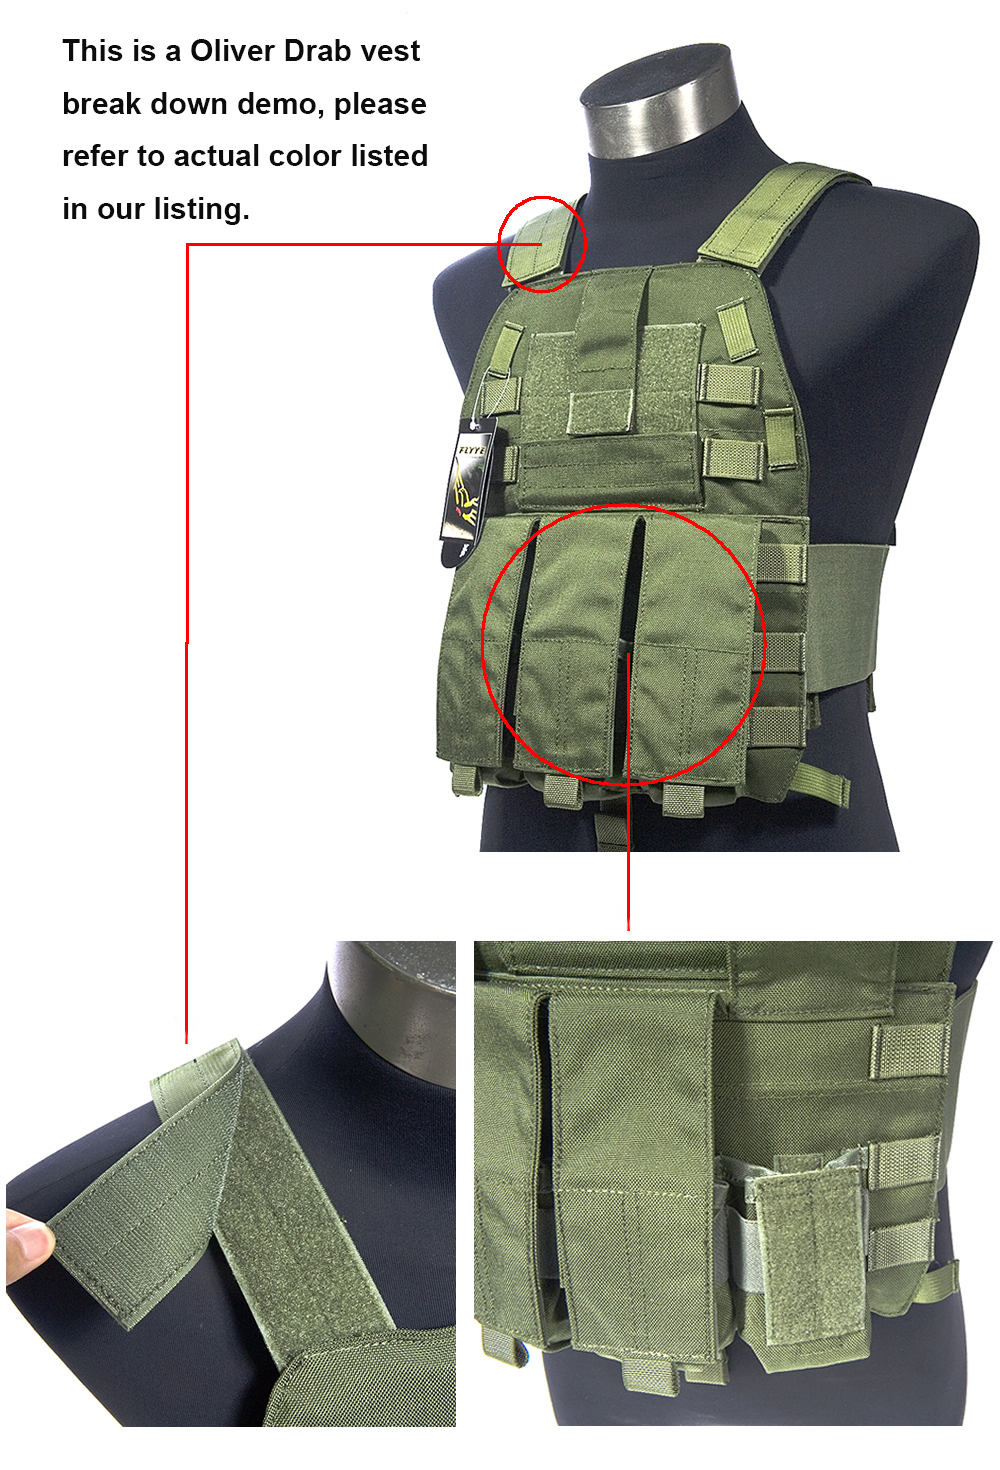 MILITECH Mil Spec Military LT6094K Oliver Drab OD Plate Carrier Combat Molle Tactical Vest Army Military Combat Vests Carrier 97 3102a 36 10s 604 circular mil spec recept mr li